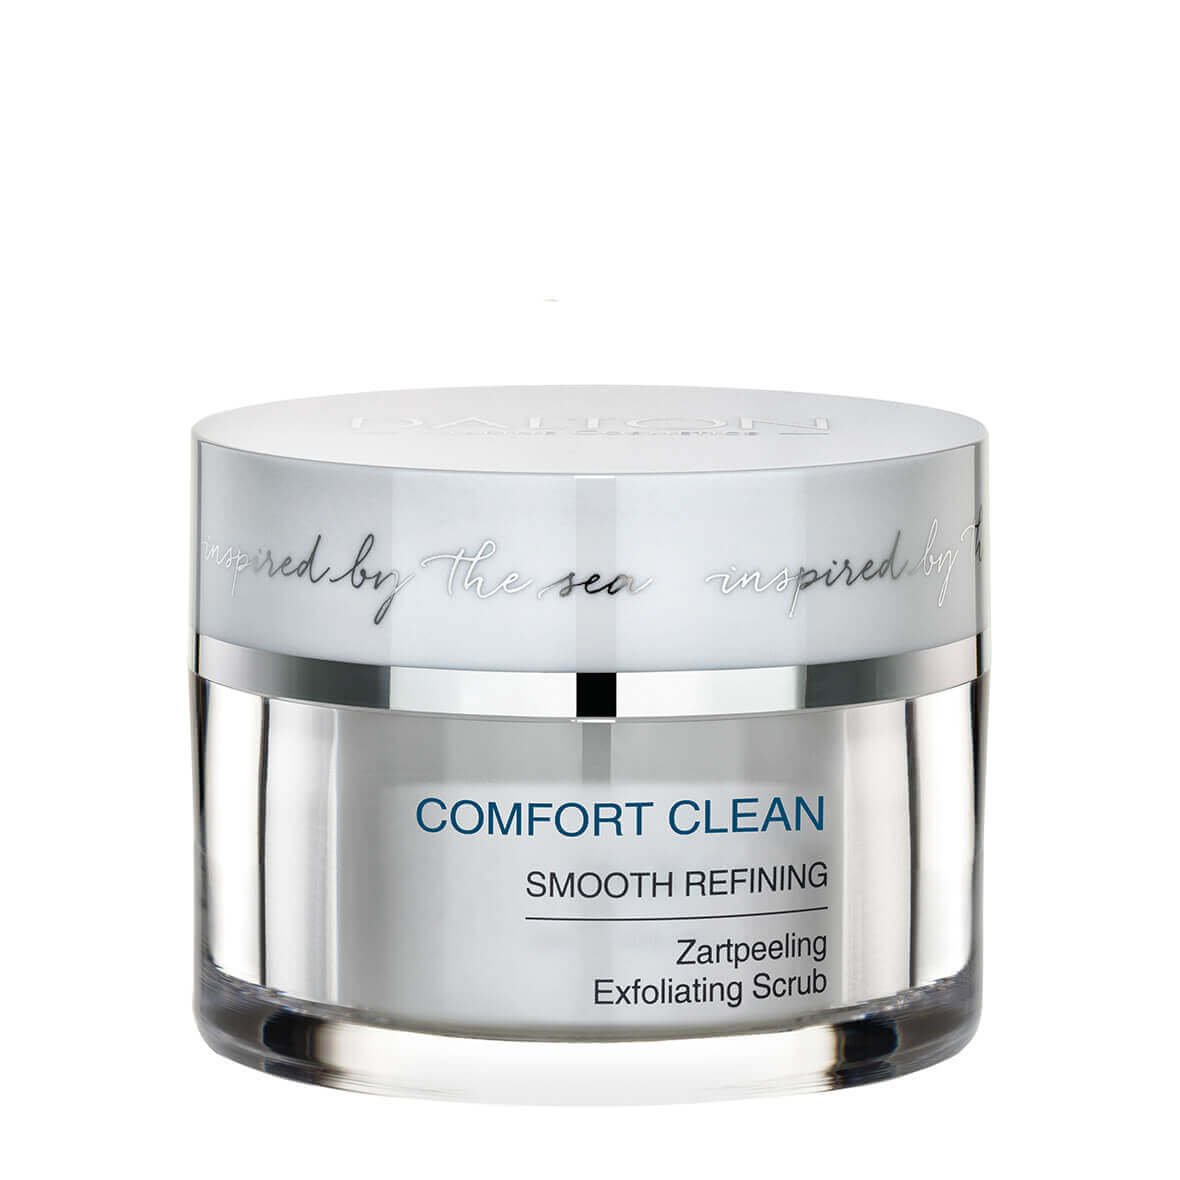 Comfort Clean Exfoliating Scrub 50ml. - Era Cosmetics, Dalton Marine Cosmetics